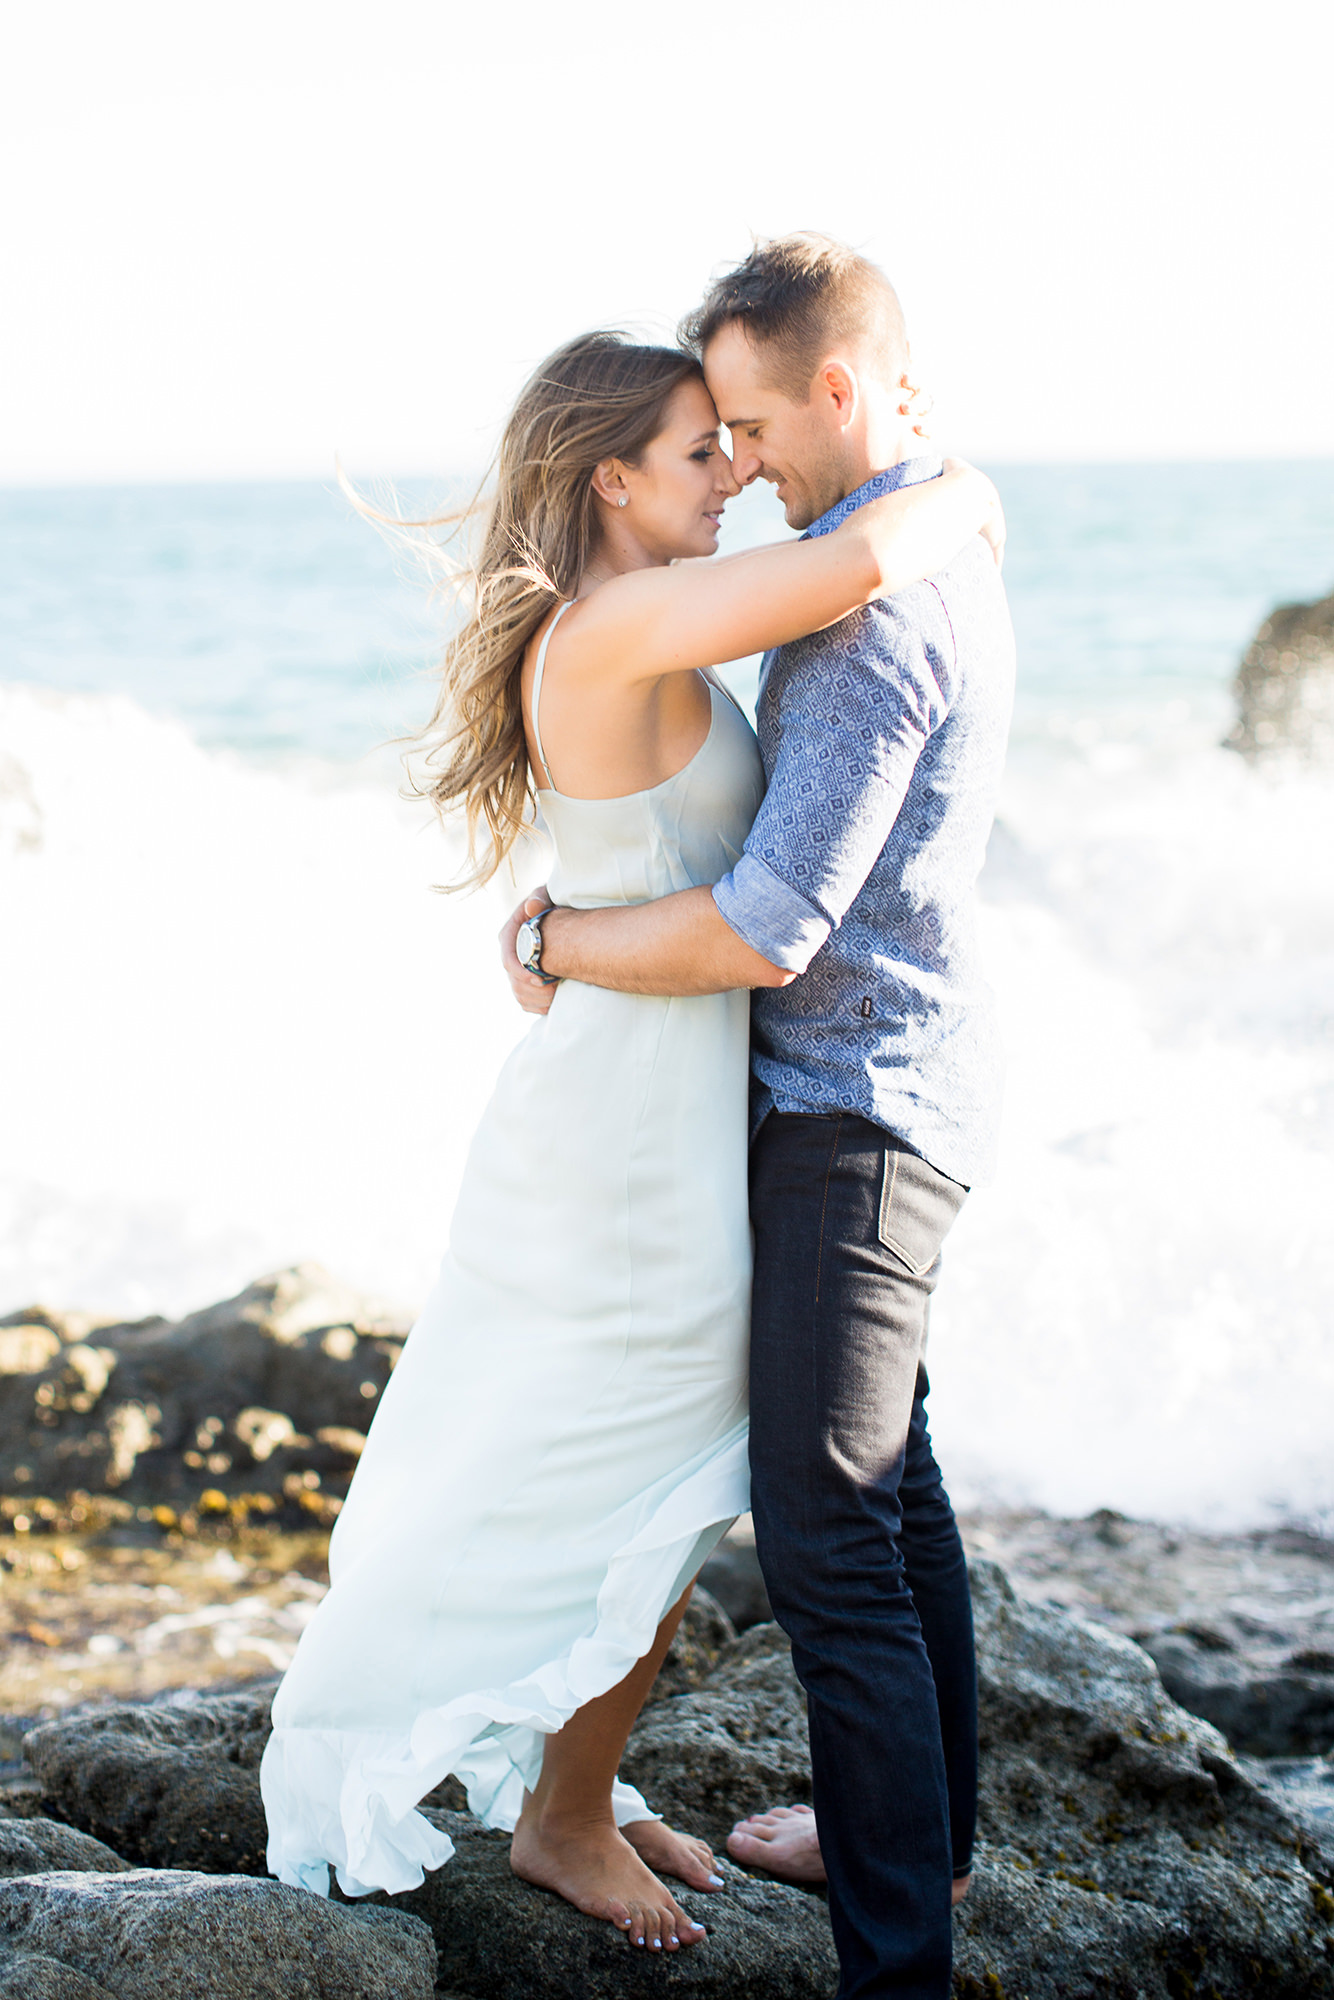 engagement photos on beach with wave crashing behind couple